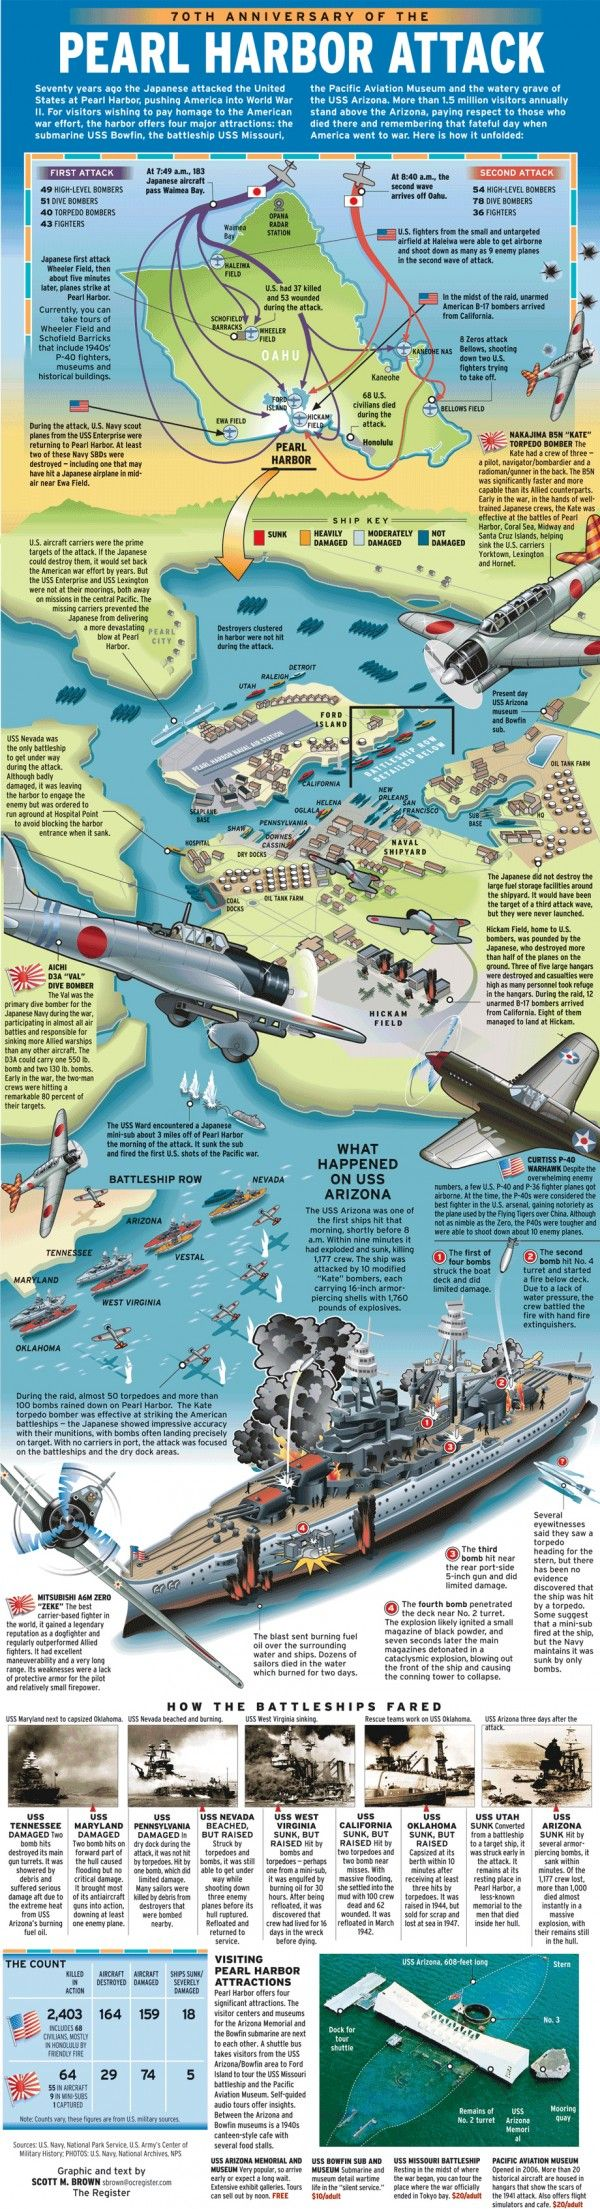 A Map Of The Whole Pearl Harbor Attack